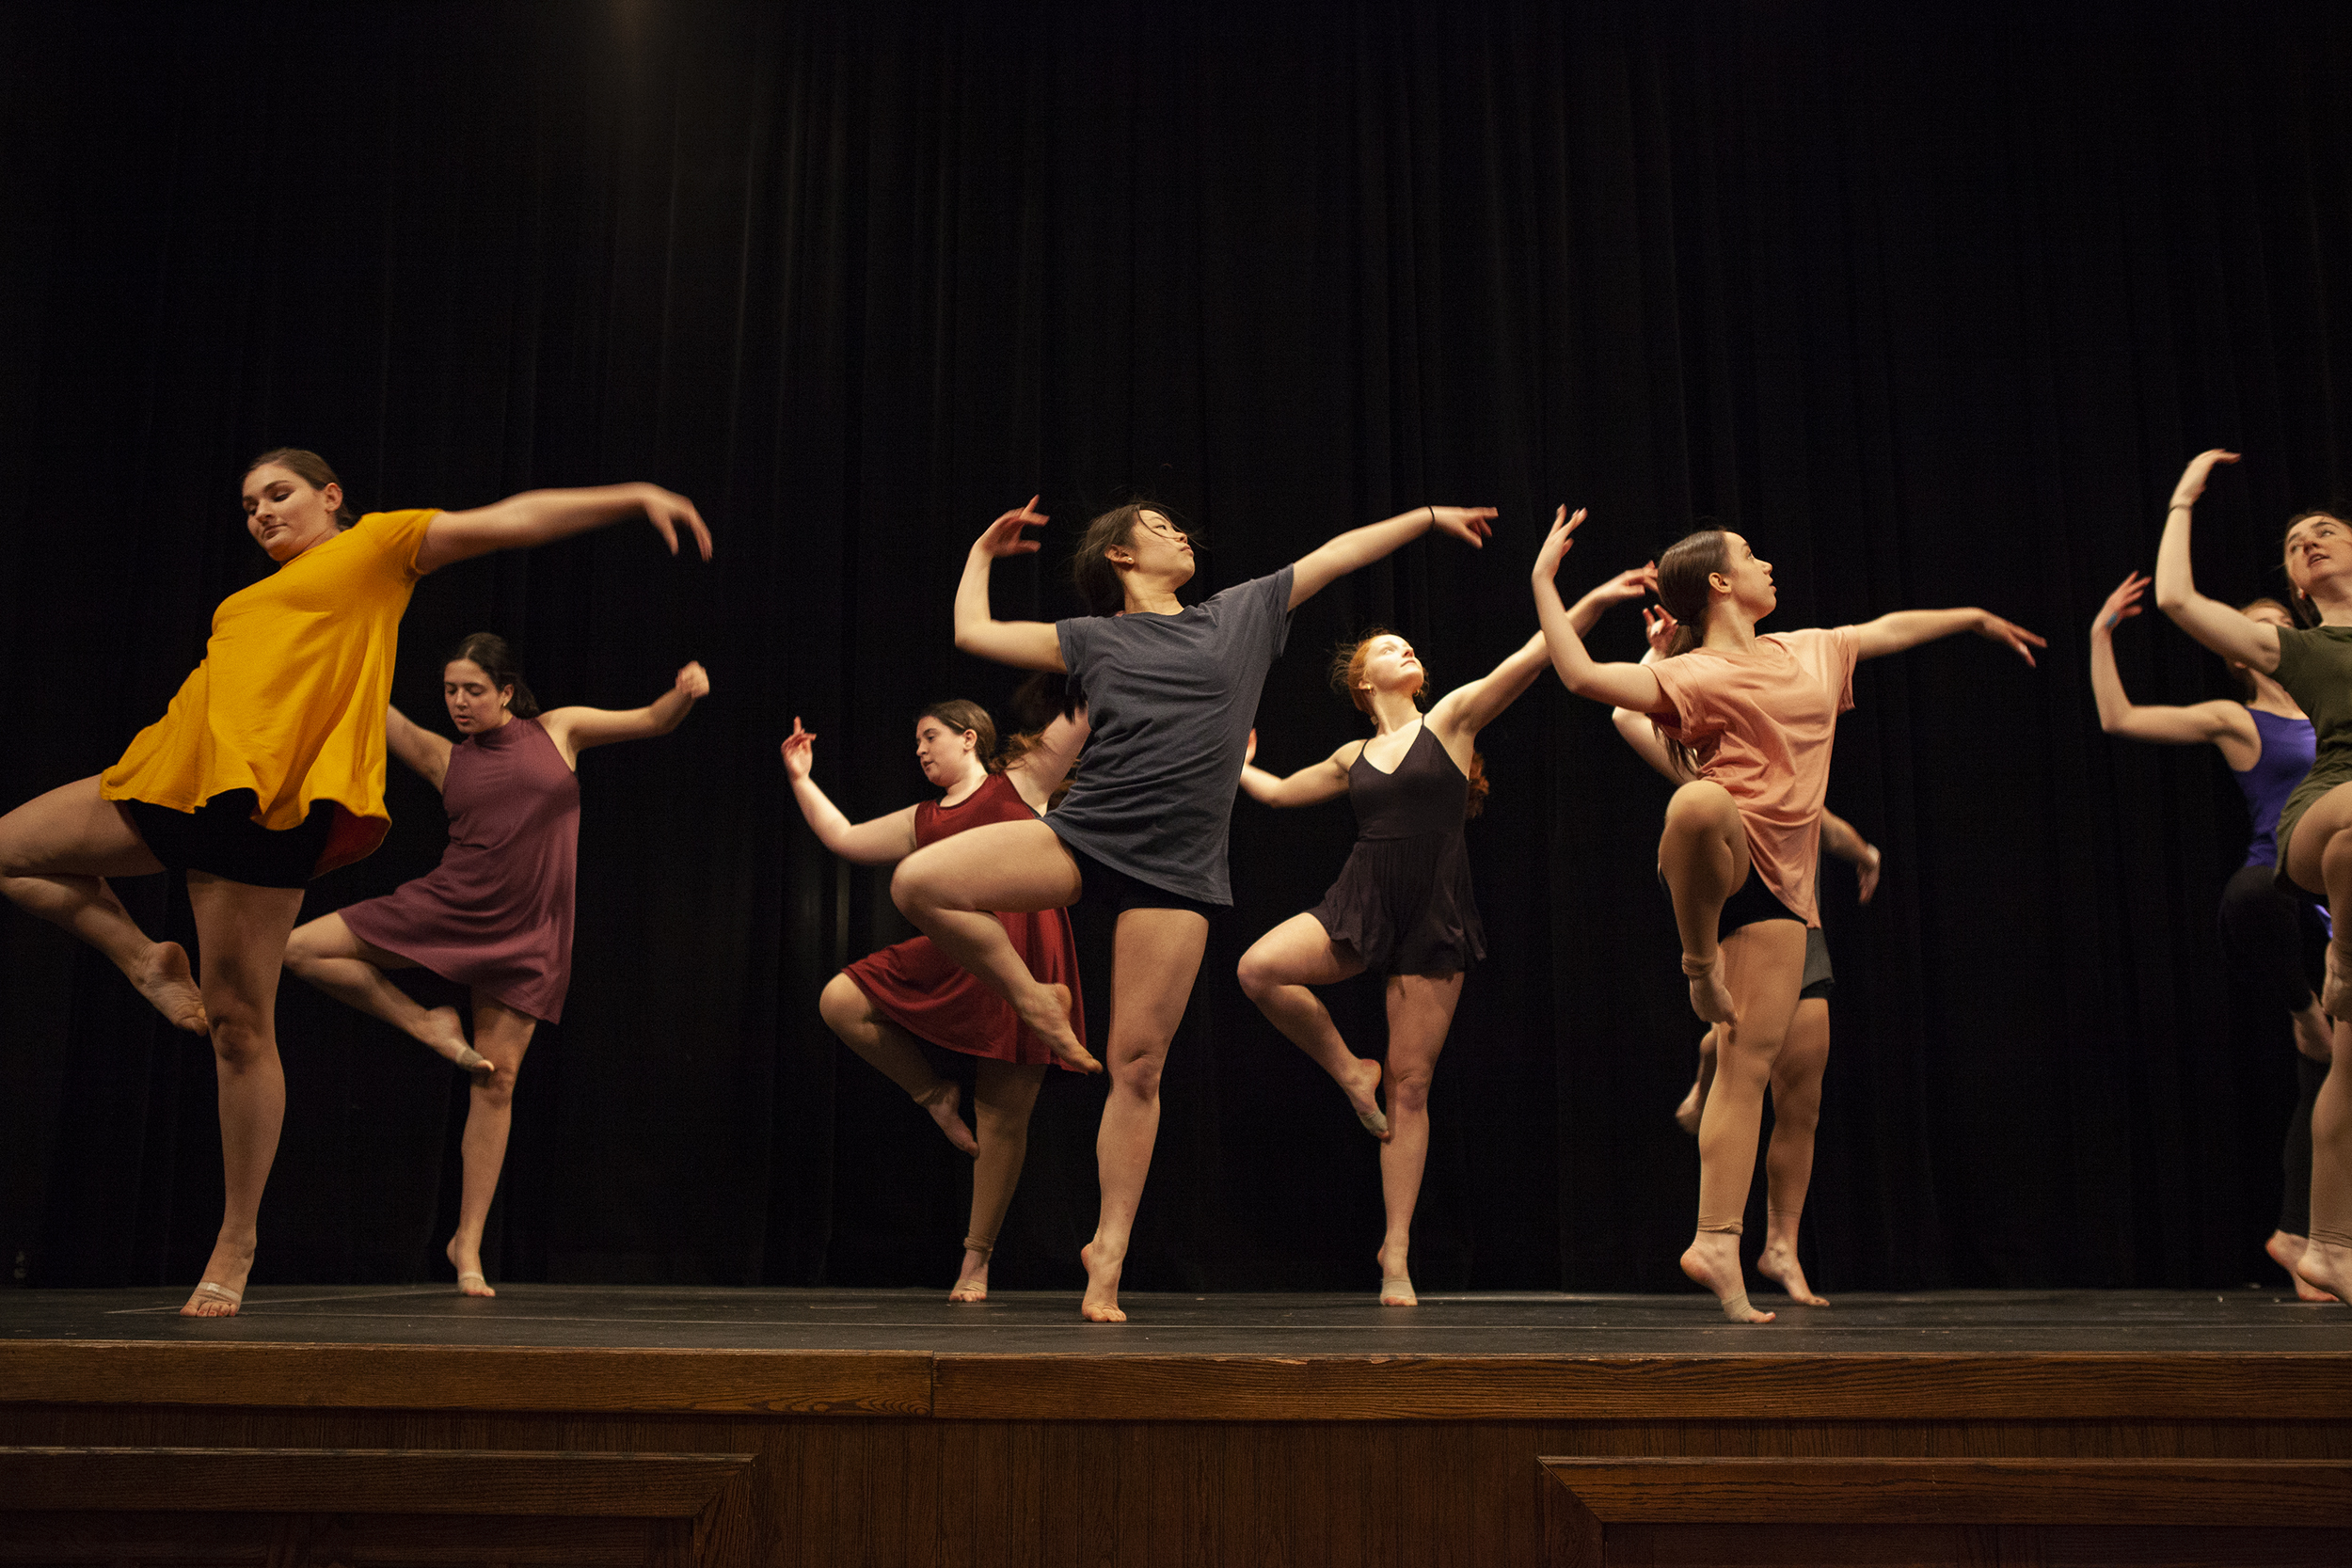 Orchesis performed their Spring 2019 Orchesis Showcase at the Riviera from Saturday March 30 to Sunday March 31. Several small groups choreographed their own dances to perform (Udeshi Seneviratne/photo editor).